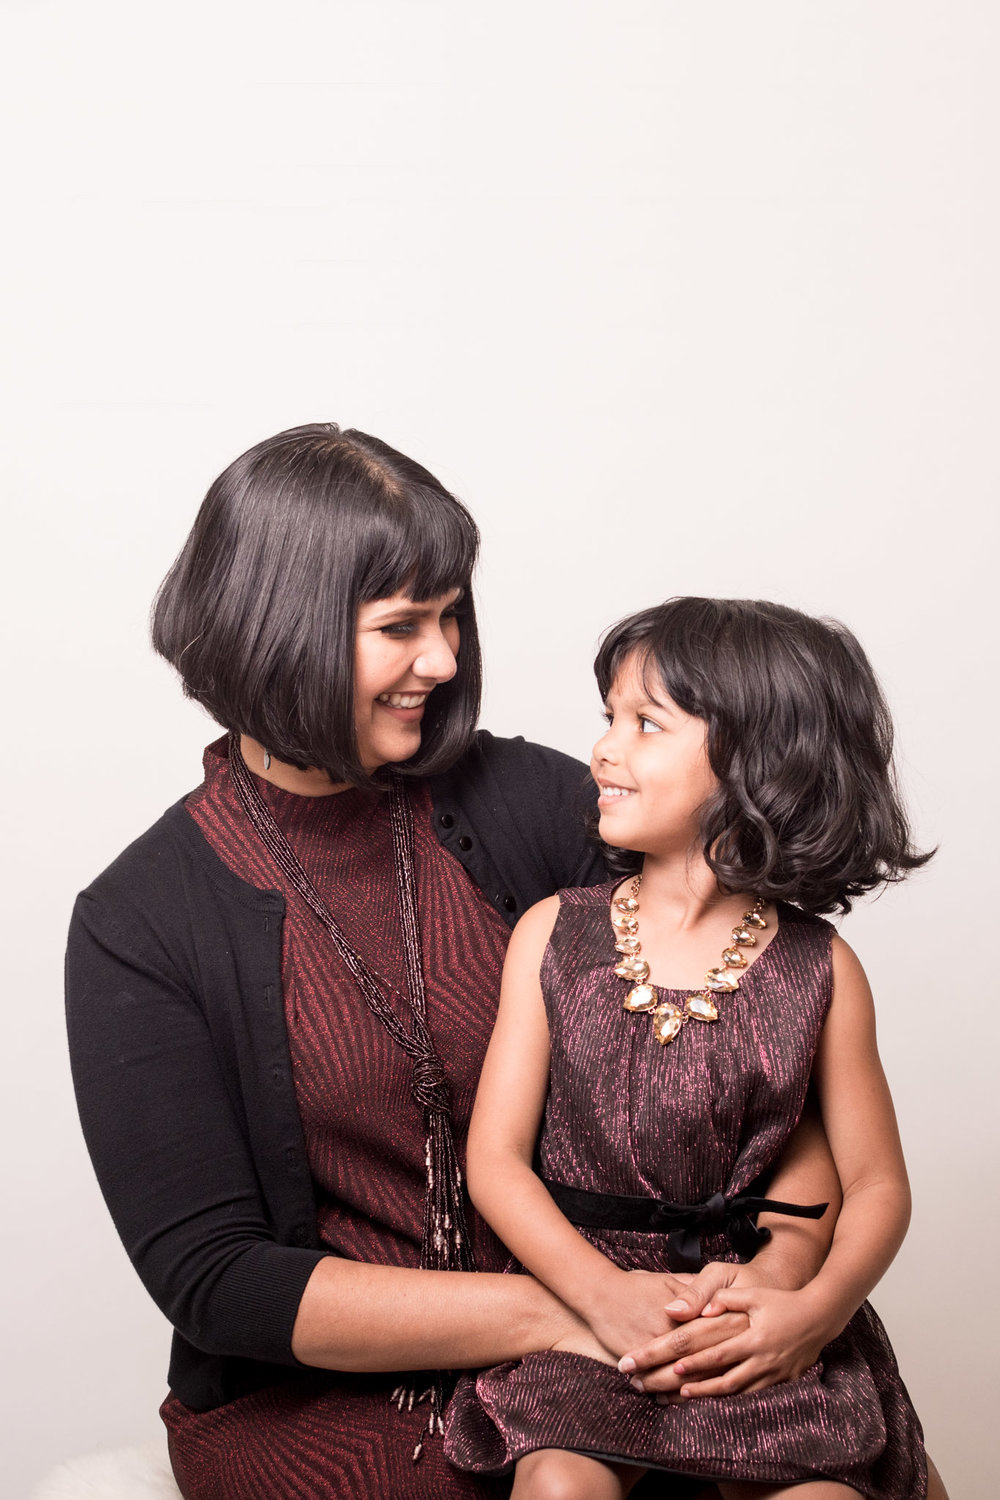 Sharanya is styled by Raquel Greer Gordian for busy days as a mom.